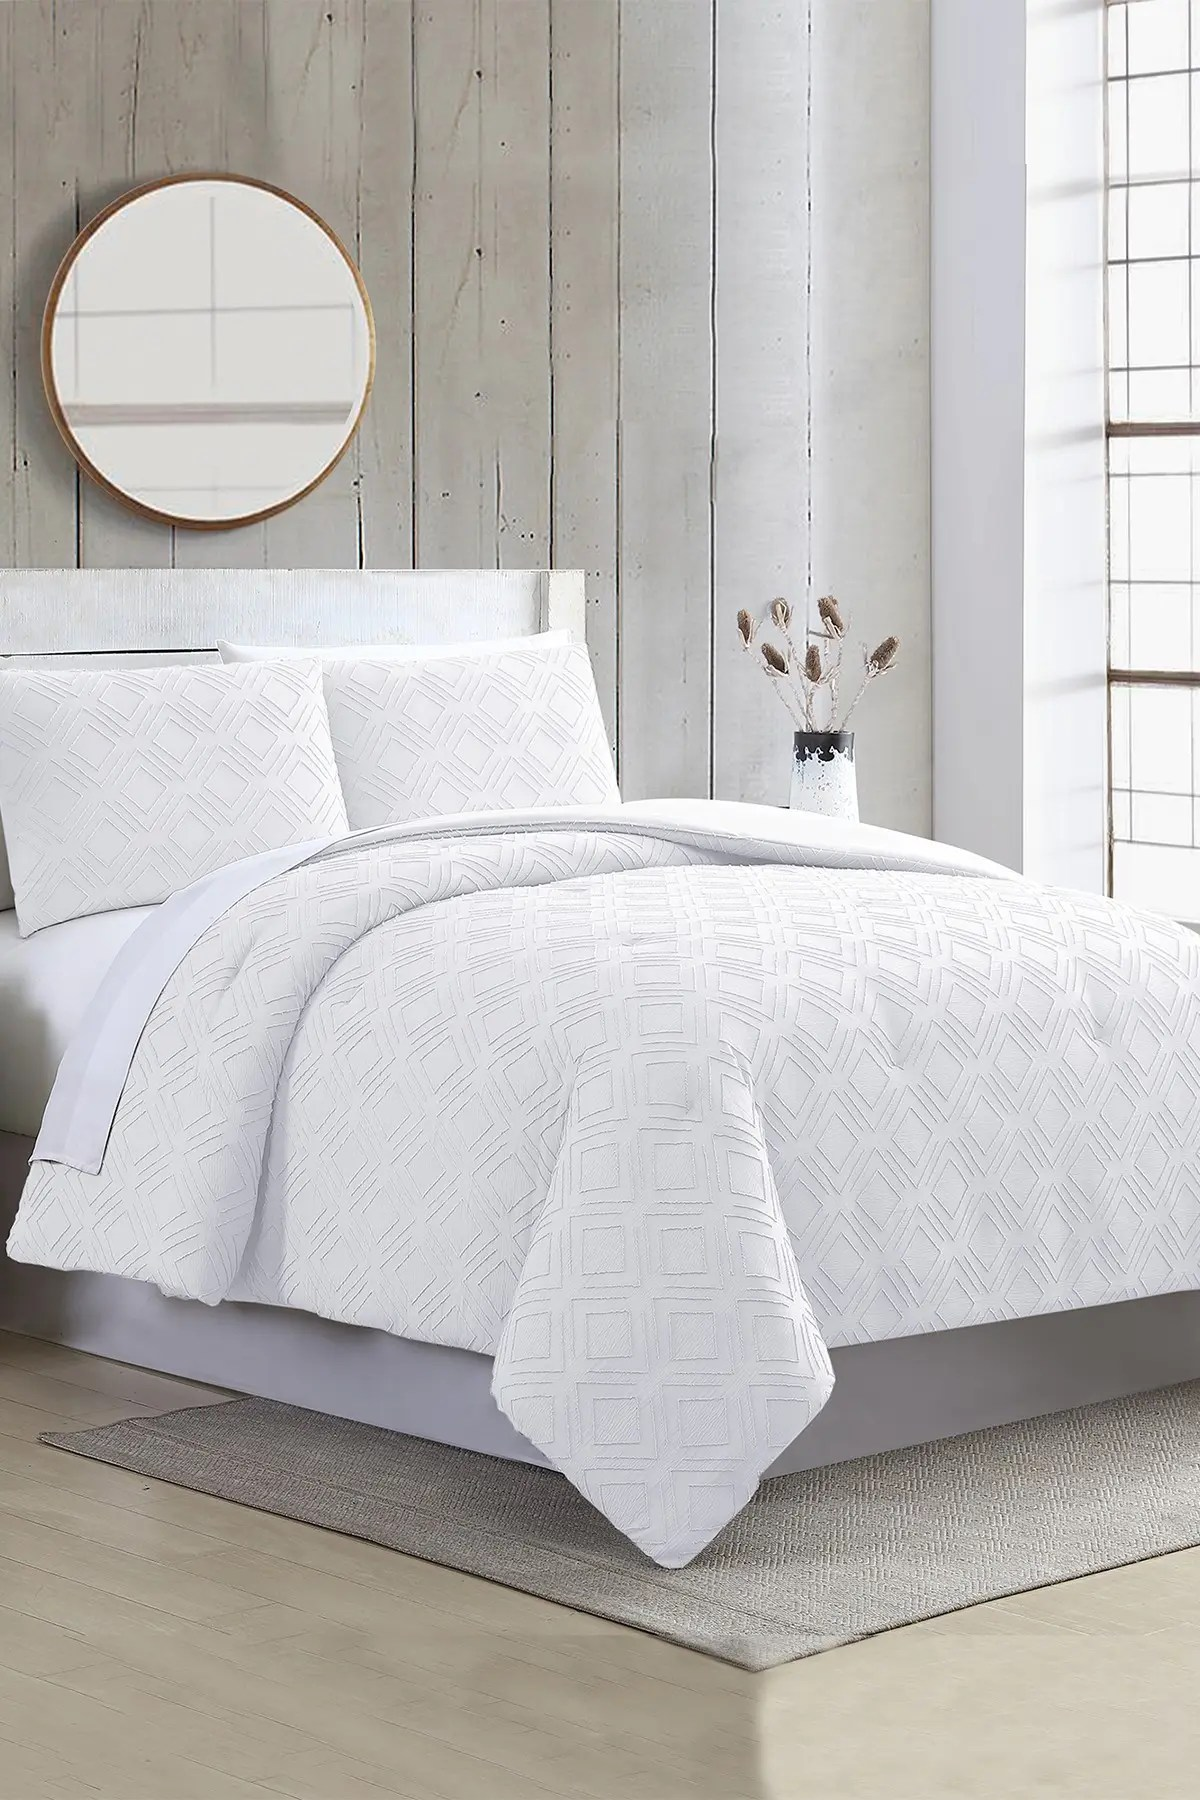 Modern Threads 3 Piece Clipped Jacquard Comforter Set Ethos White Queen Nordstrom Rack